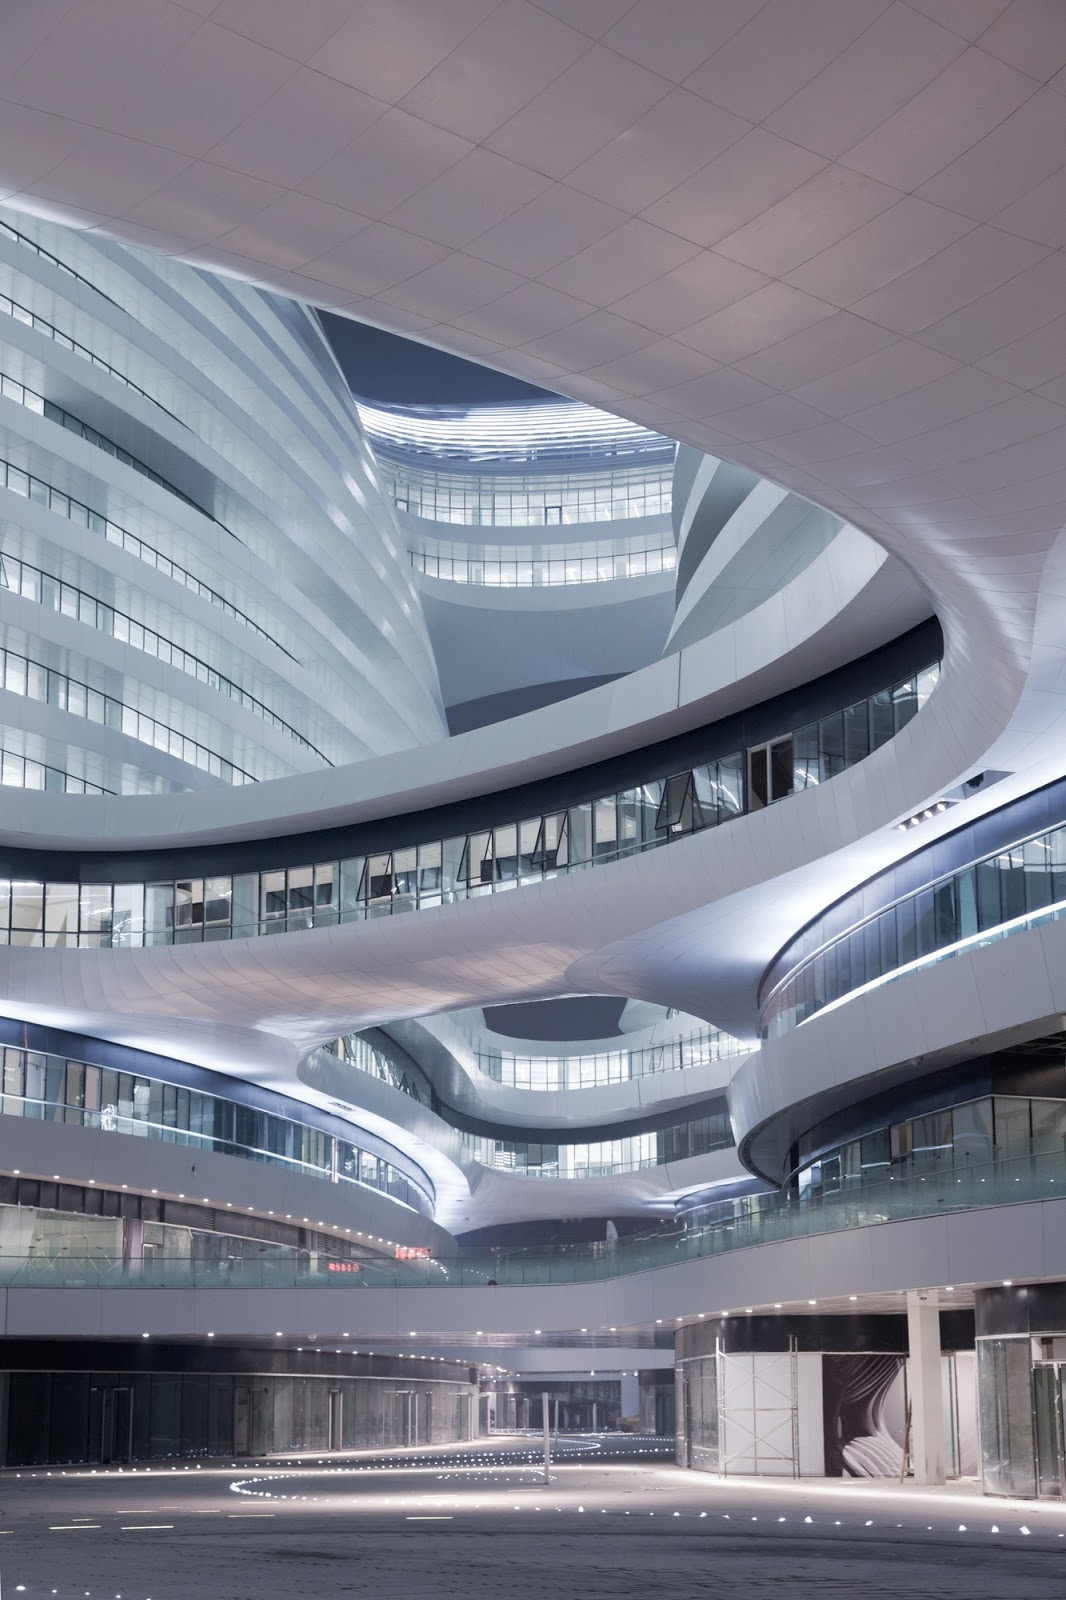 Galaxy SOHO by Zaha Hadid Architects. Photography © Iwan Baan